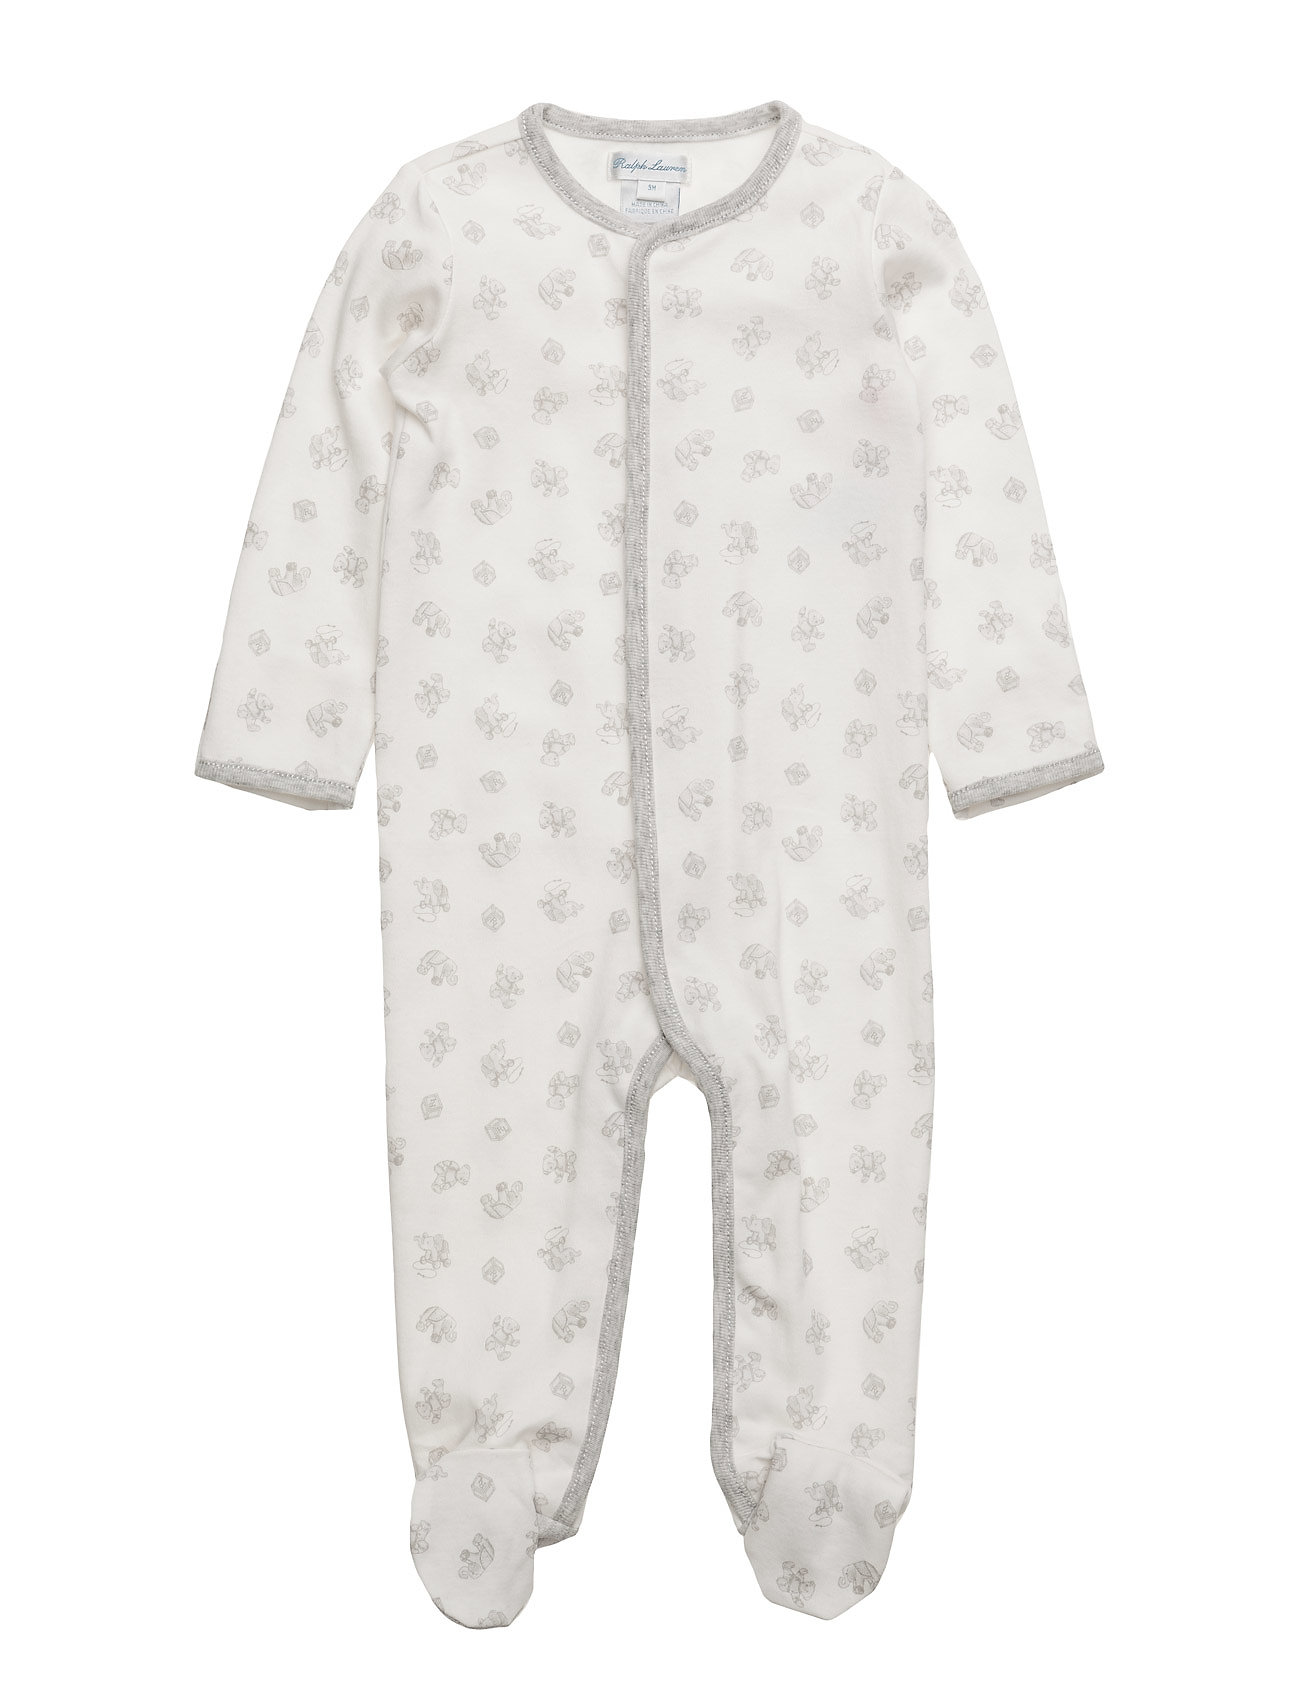 Ralph Lauren Baby Playtime-Print Cotton Coverall - PAPER WHITE MUL